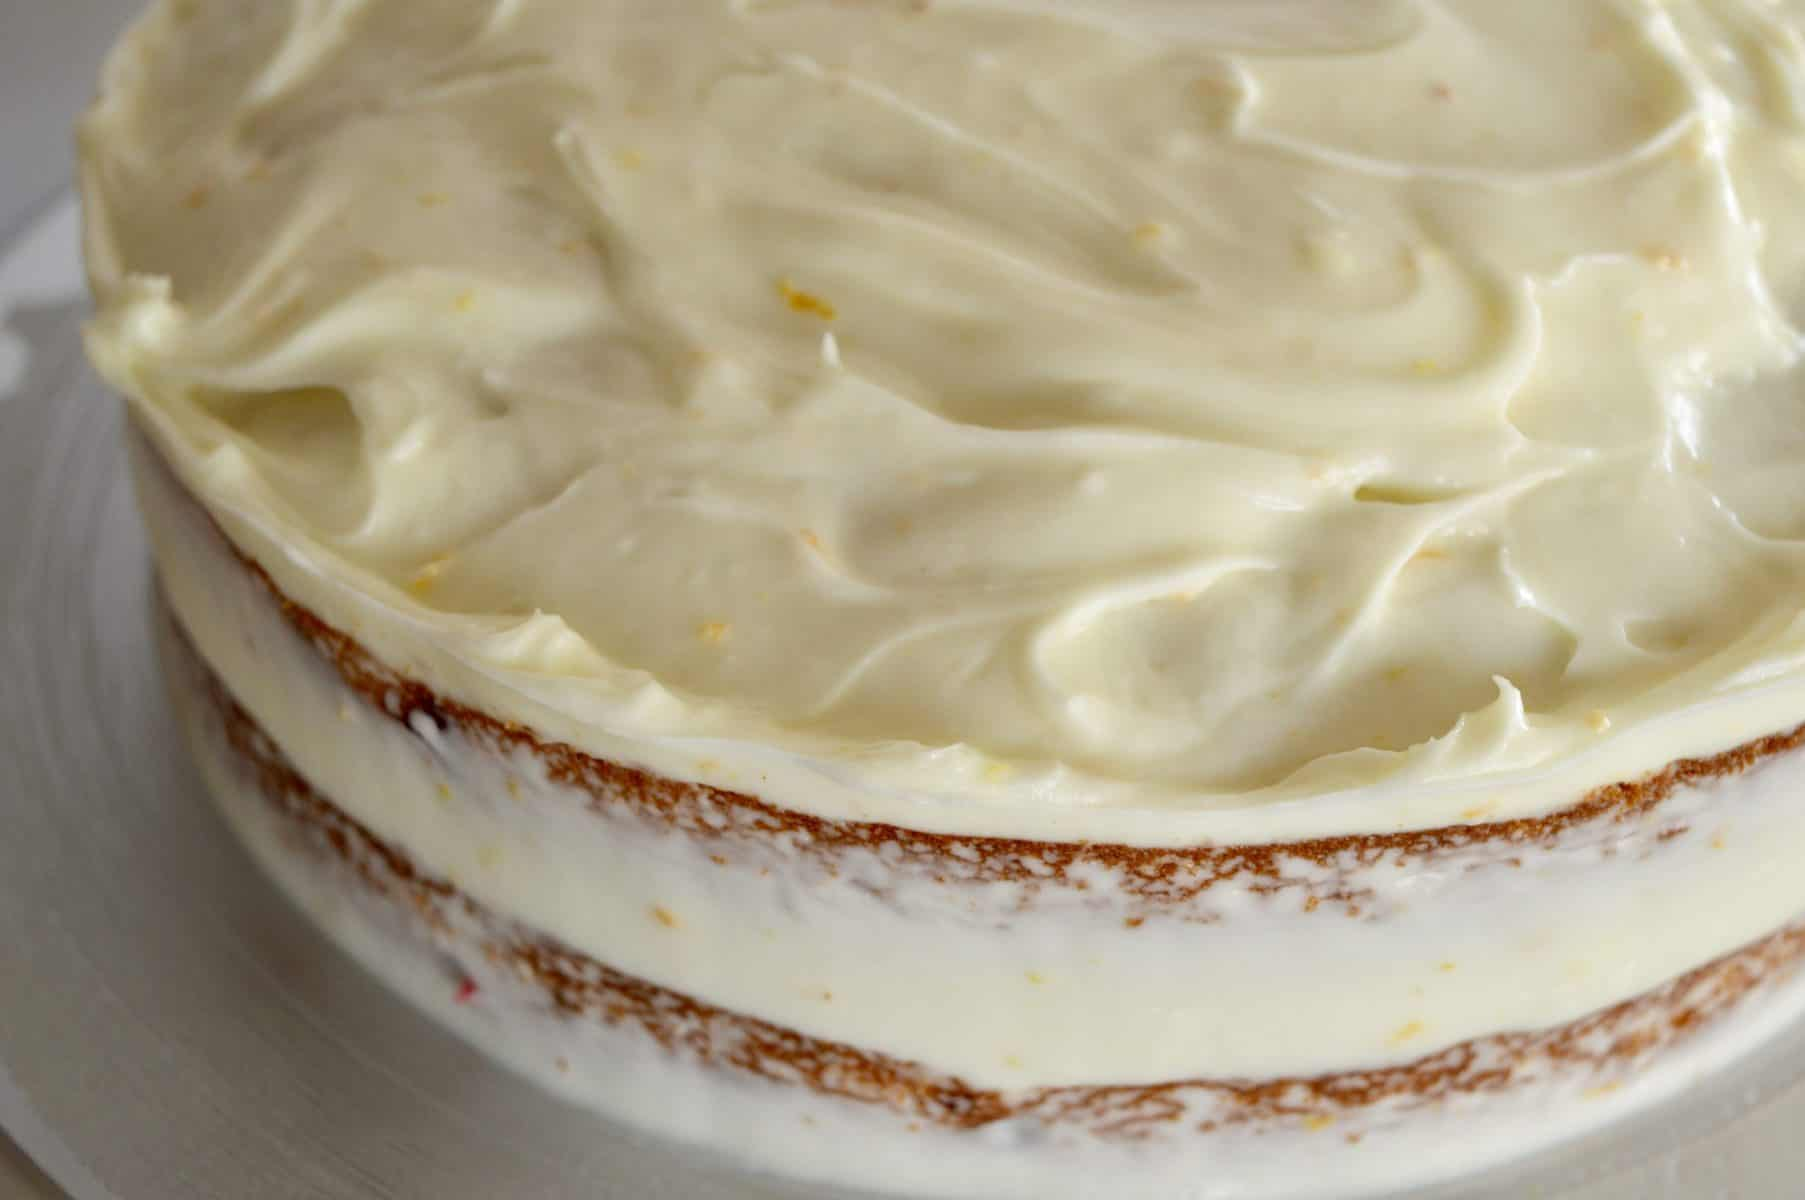 Close up of orange cream cheese frosting on the cake.